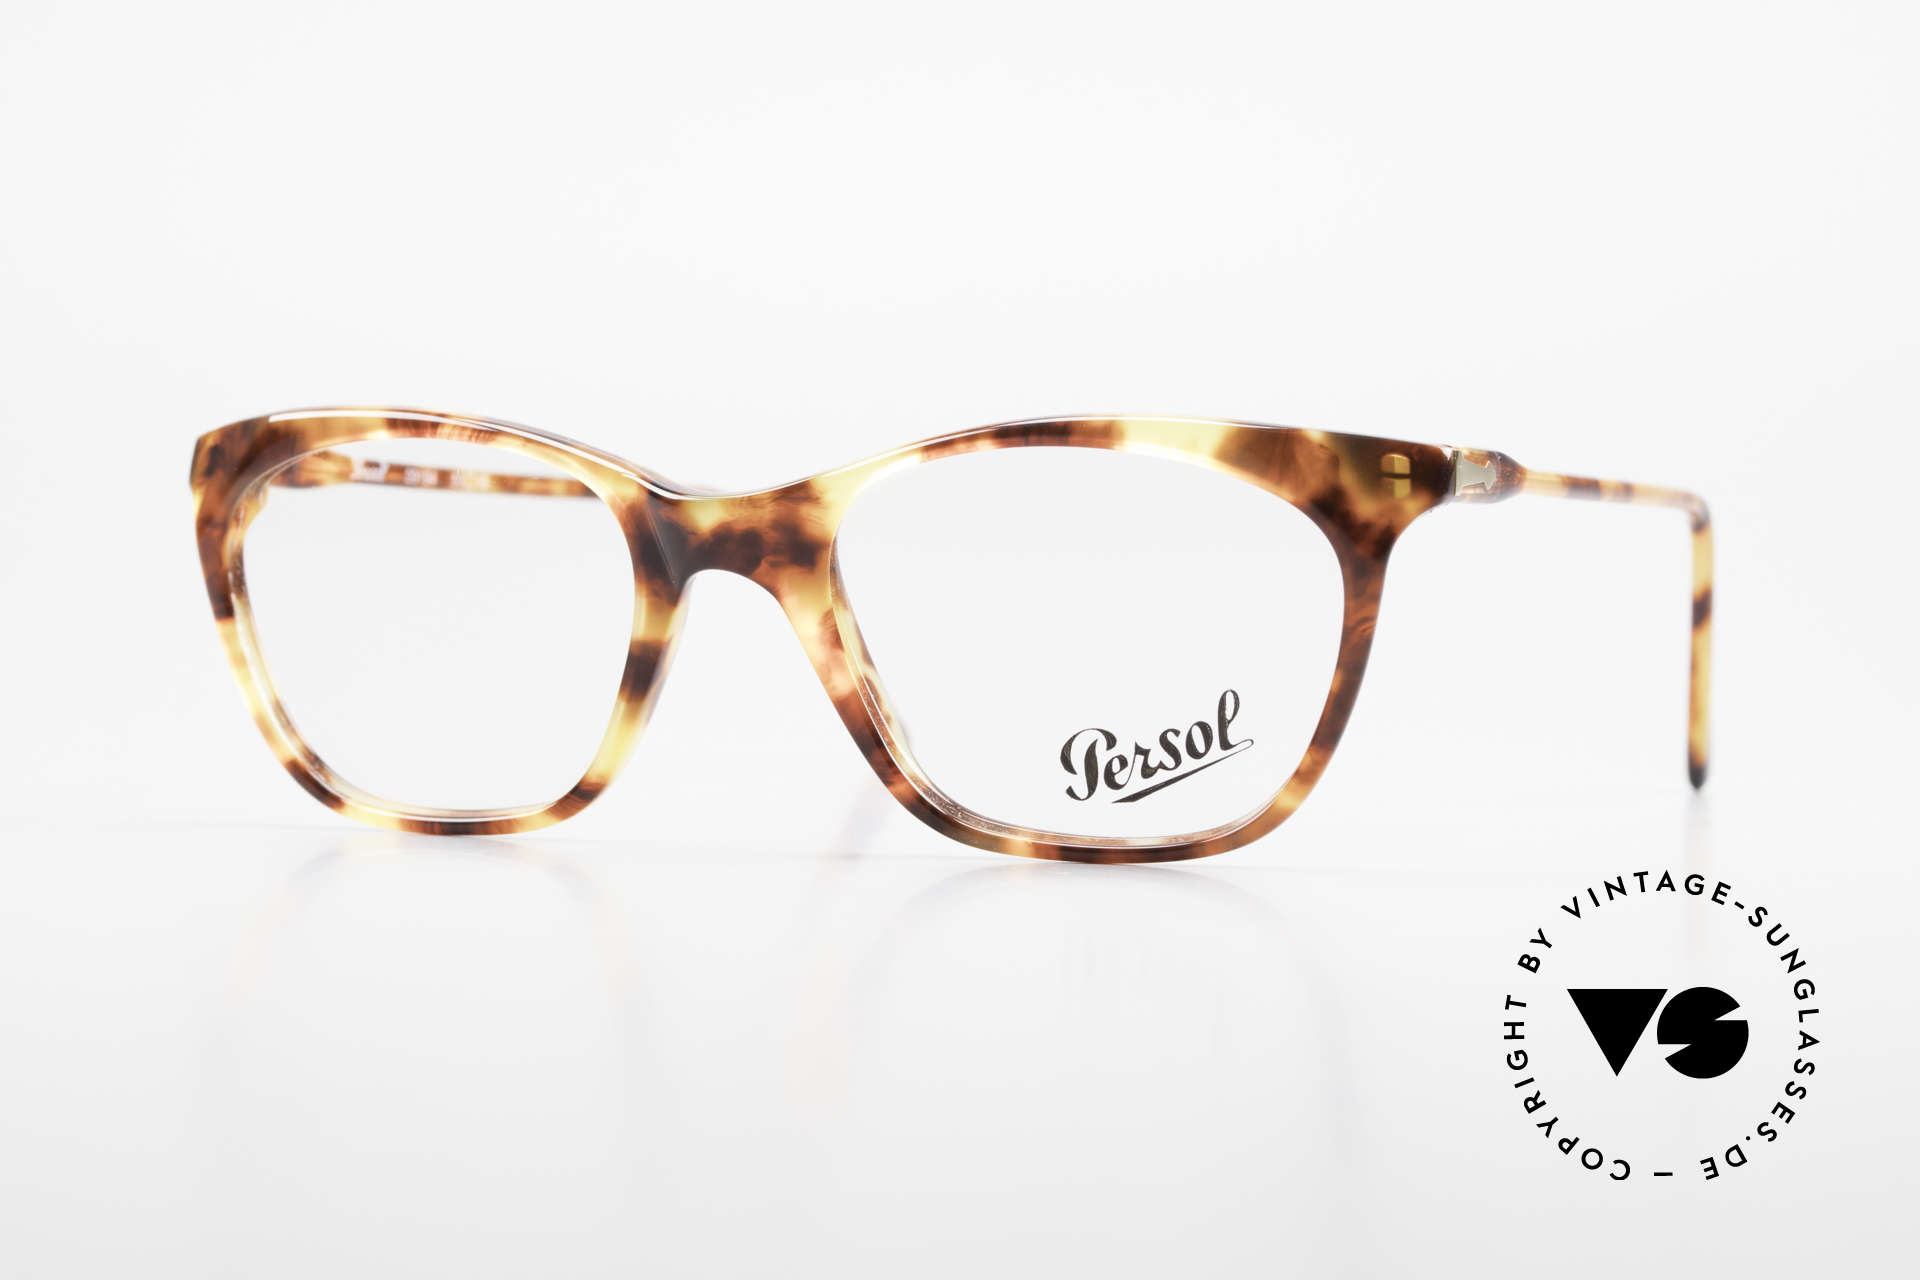 Persol 09194 Classic Vintage Frame 90's, classic timeless design & best craftsmanship, Made for Women